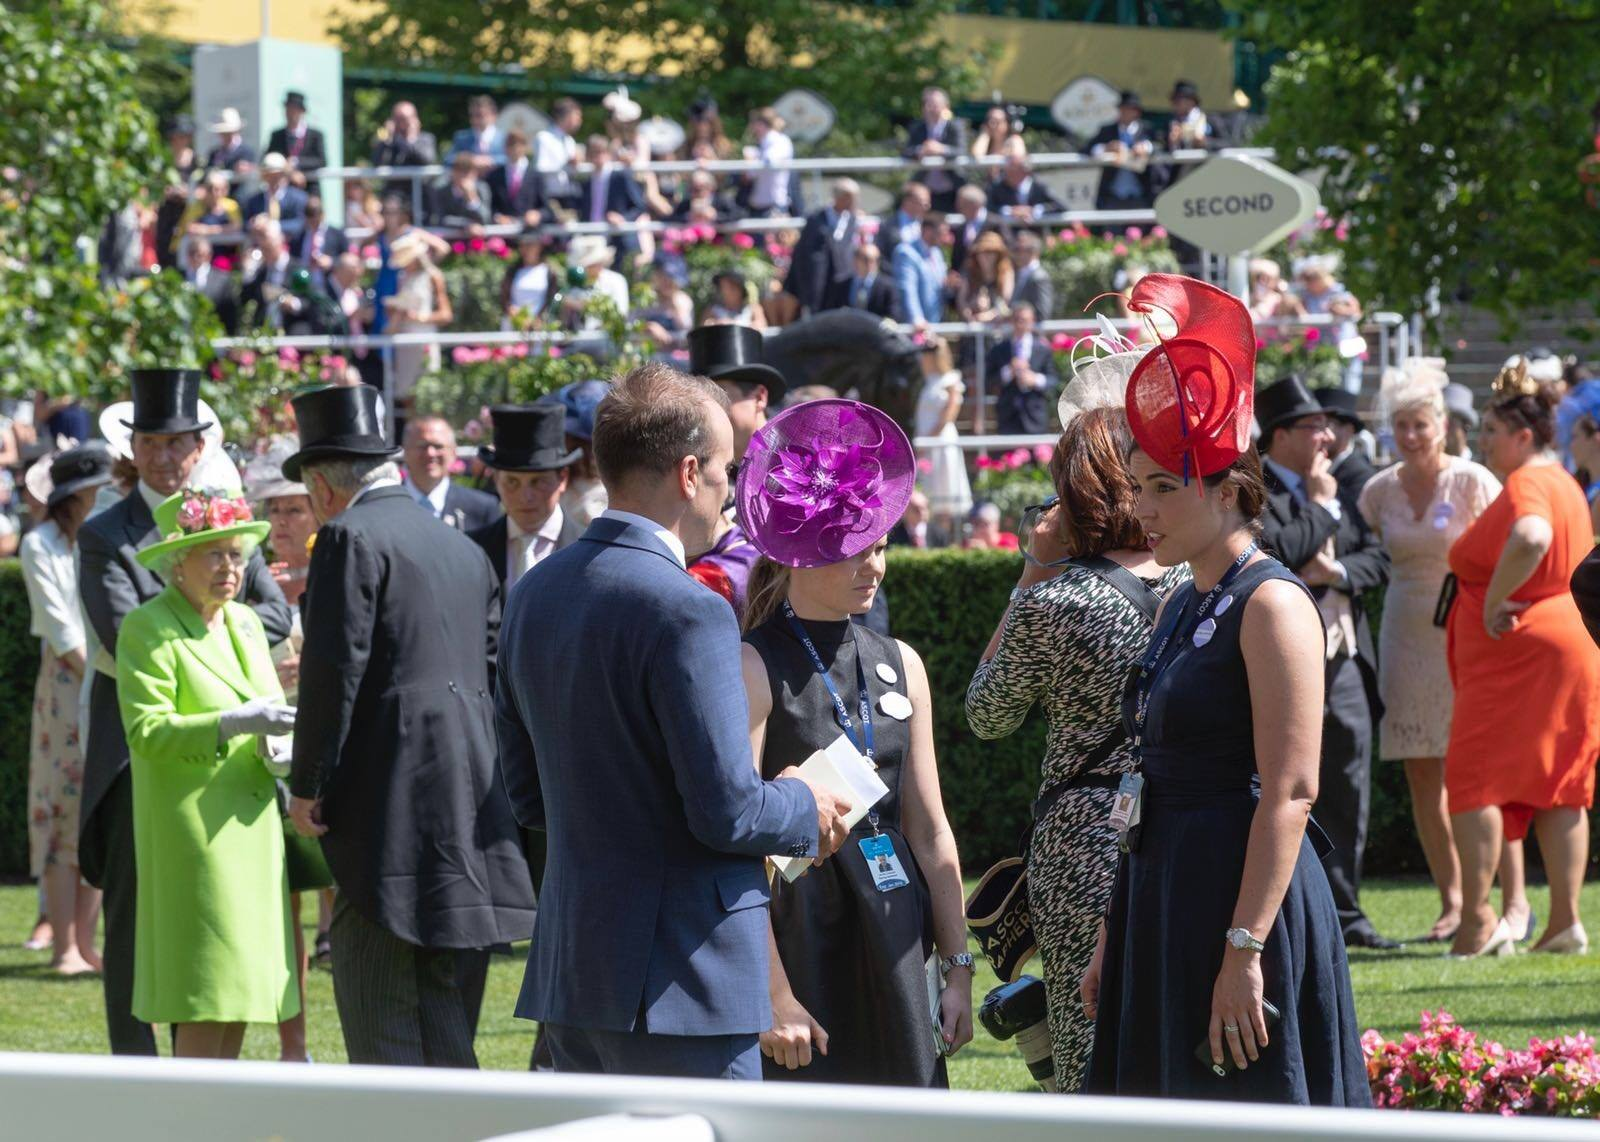 Ashley Morton Hunte wearing a Katherine Elizabeth Milinery red hat during Royal Ascot, looking after the Royal Family.